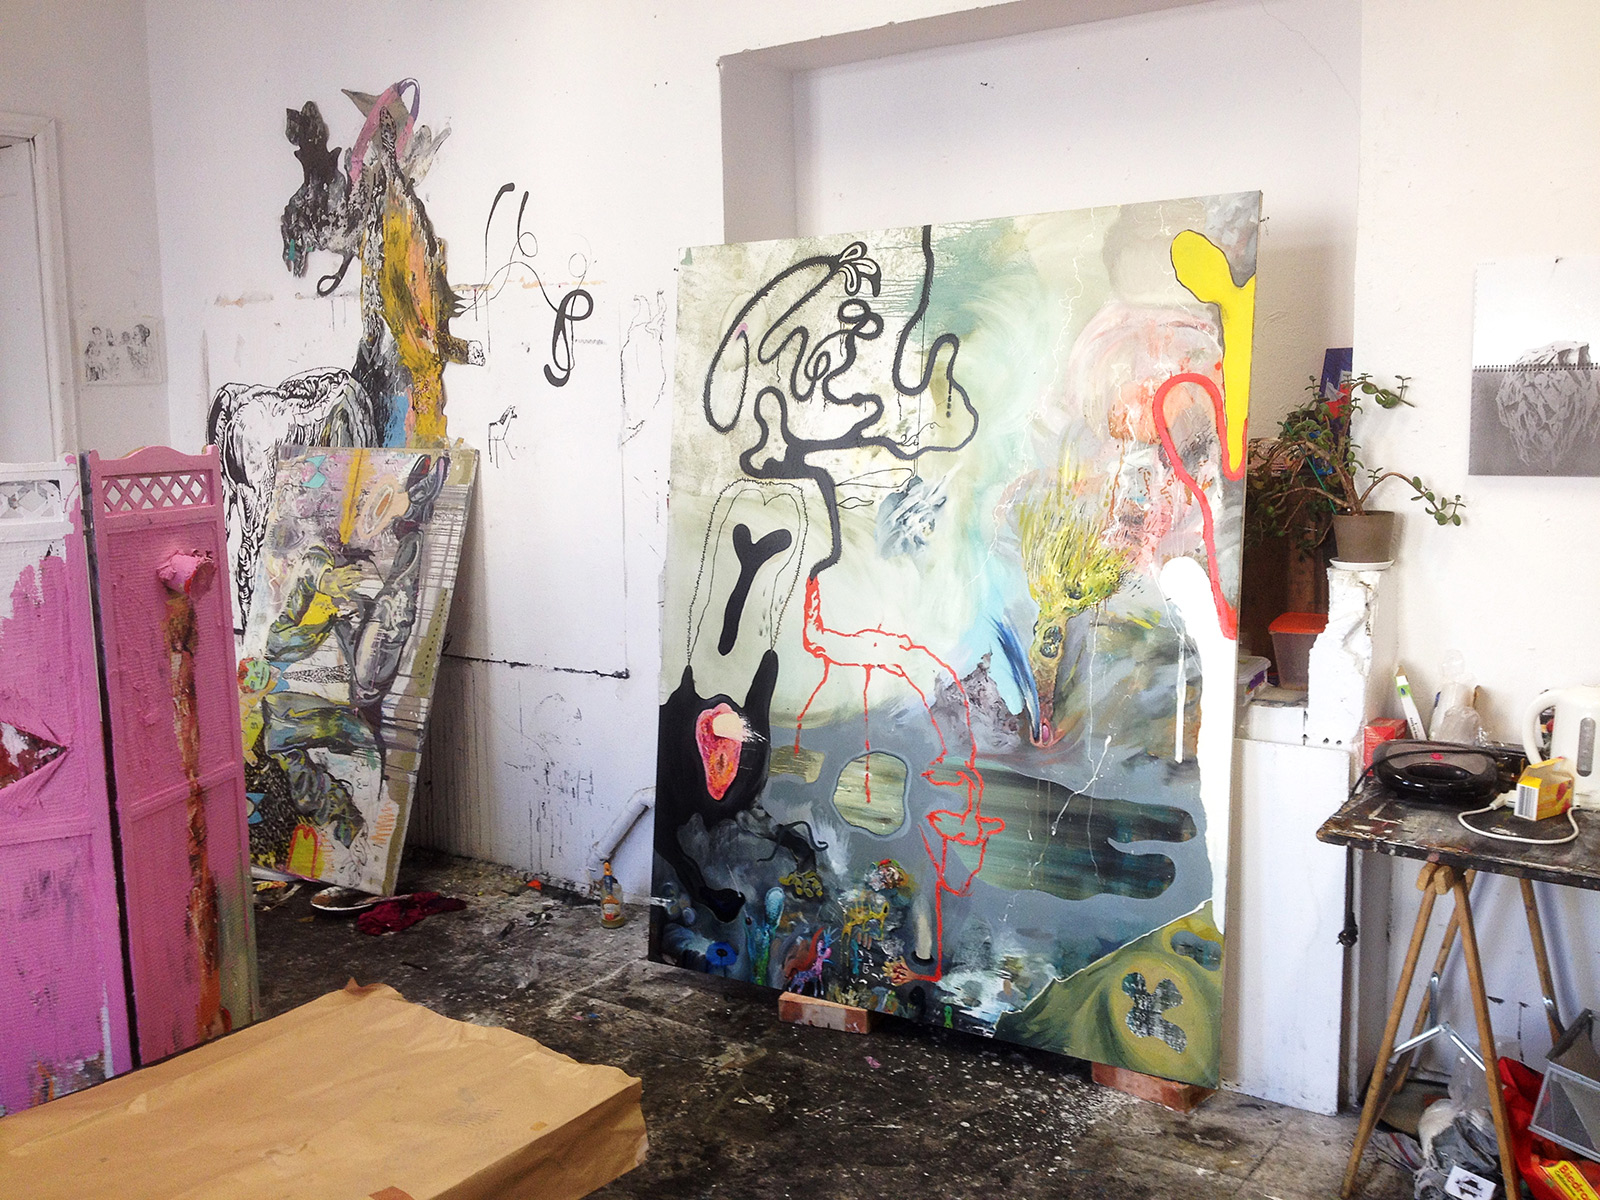 View in the artist's studio